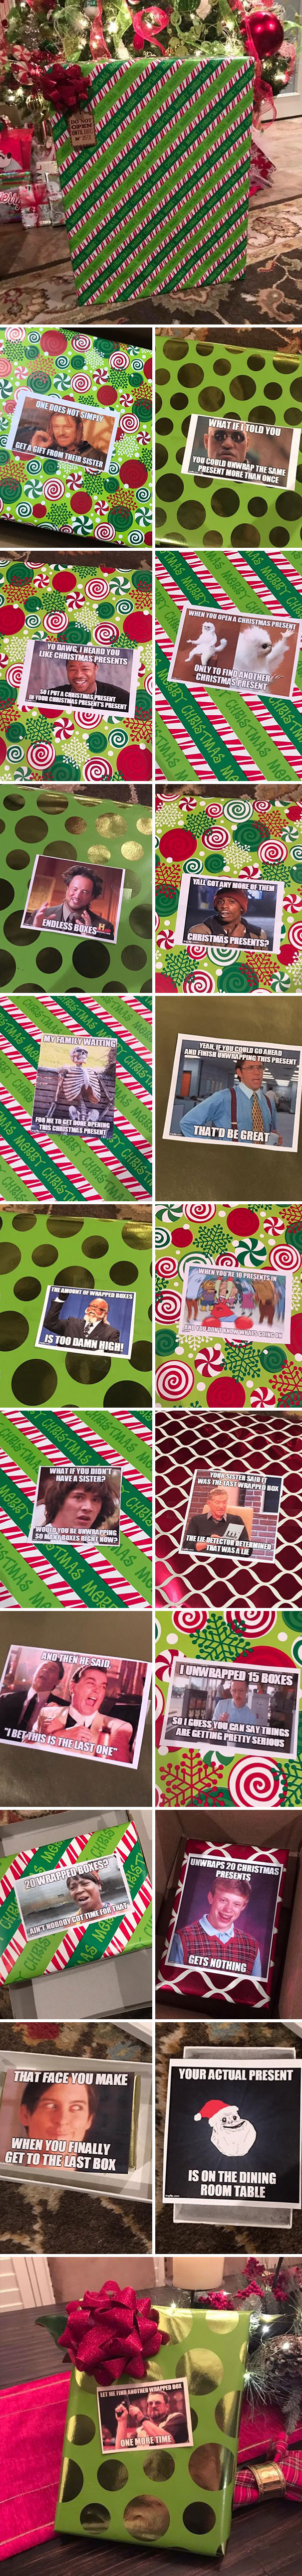 20+ Times Trolls Had The Funniest Christmas Gift Ideas Ever | Bored ...